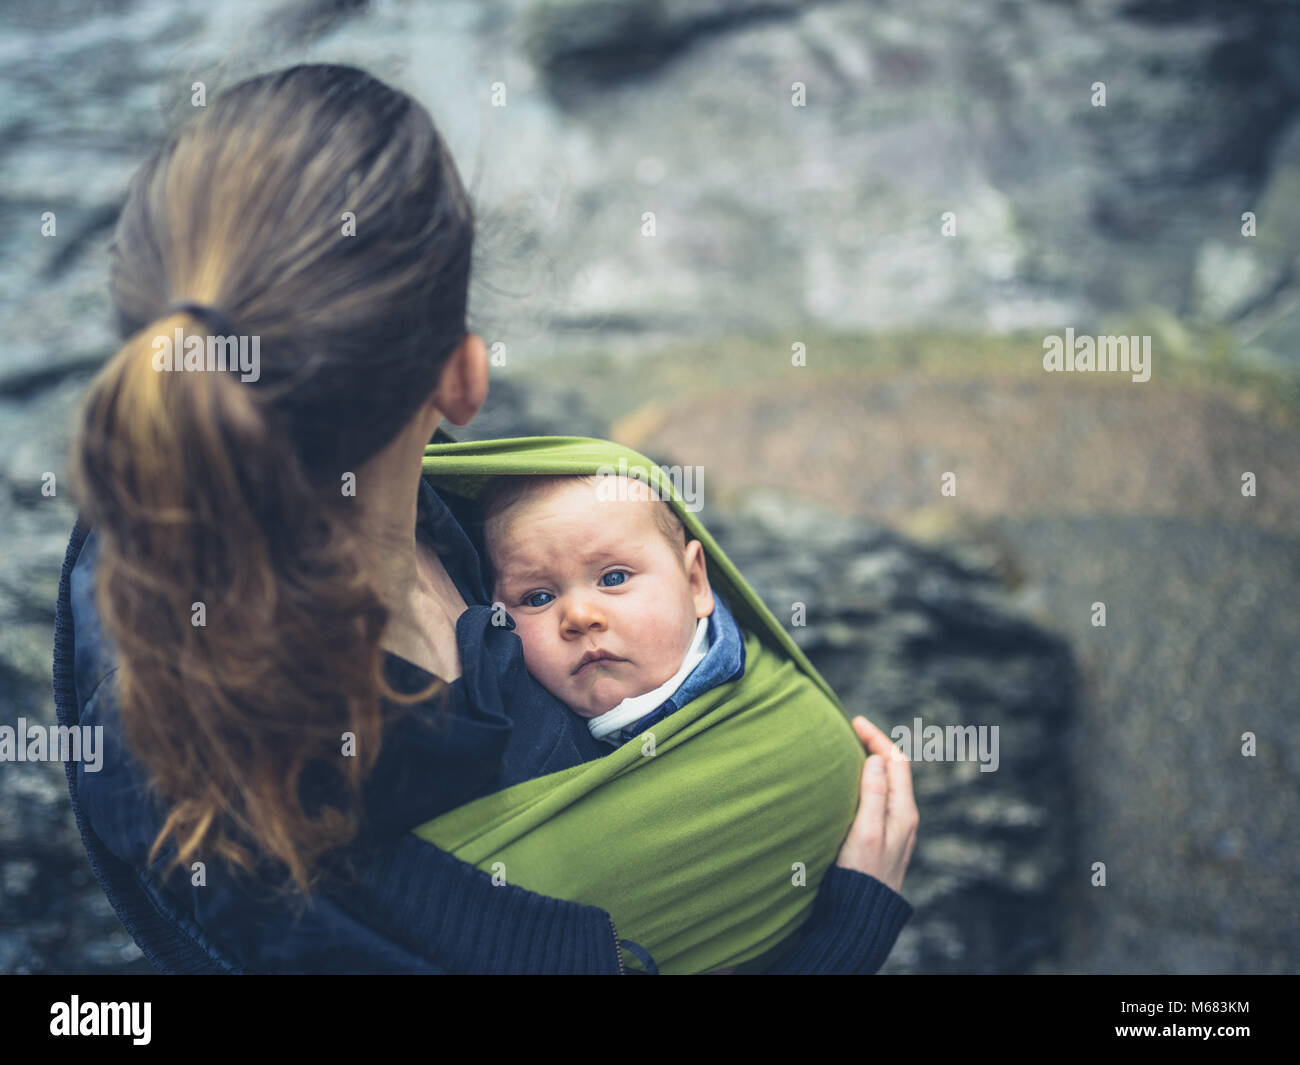 A young mother is standing outside in nature with her baby in a sling - Stock Image